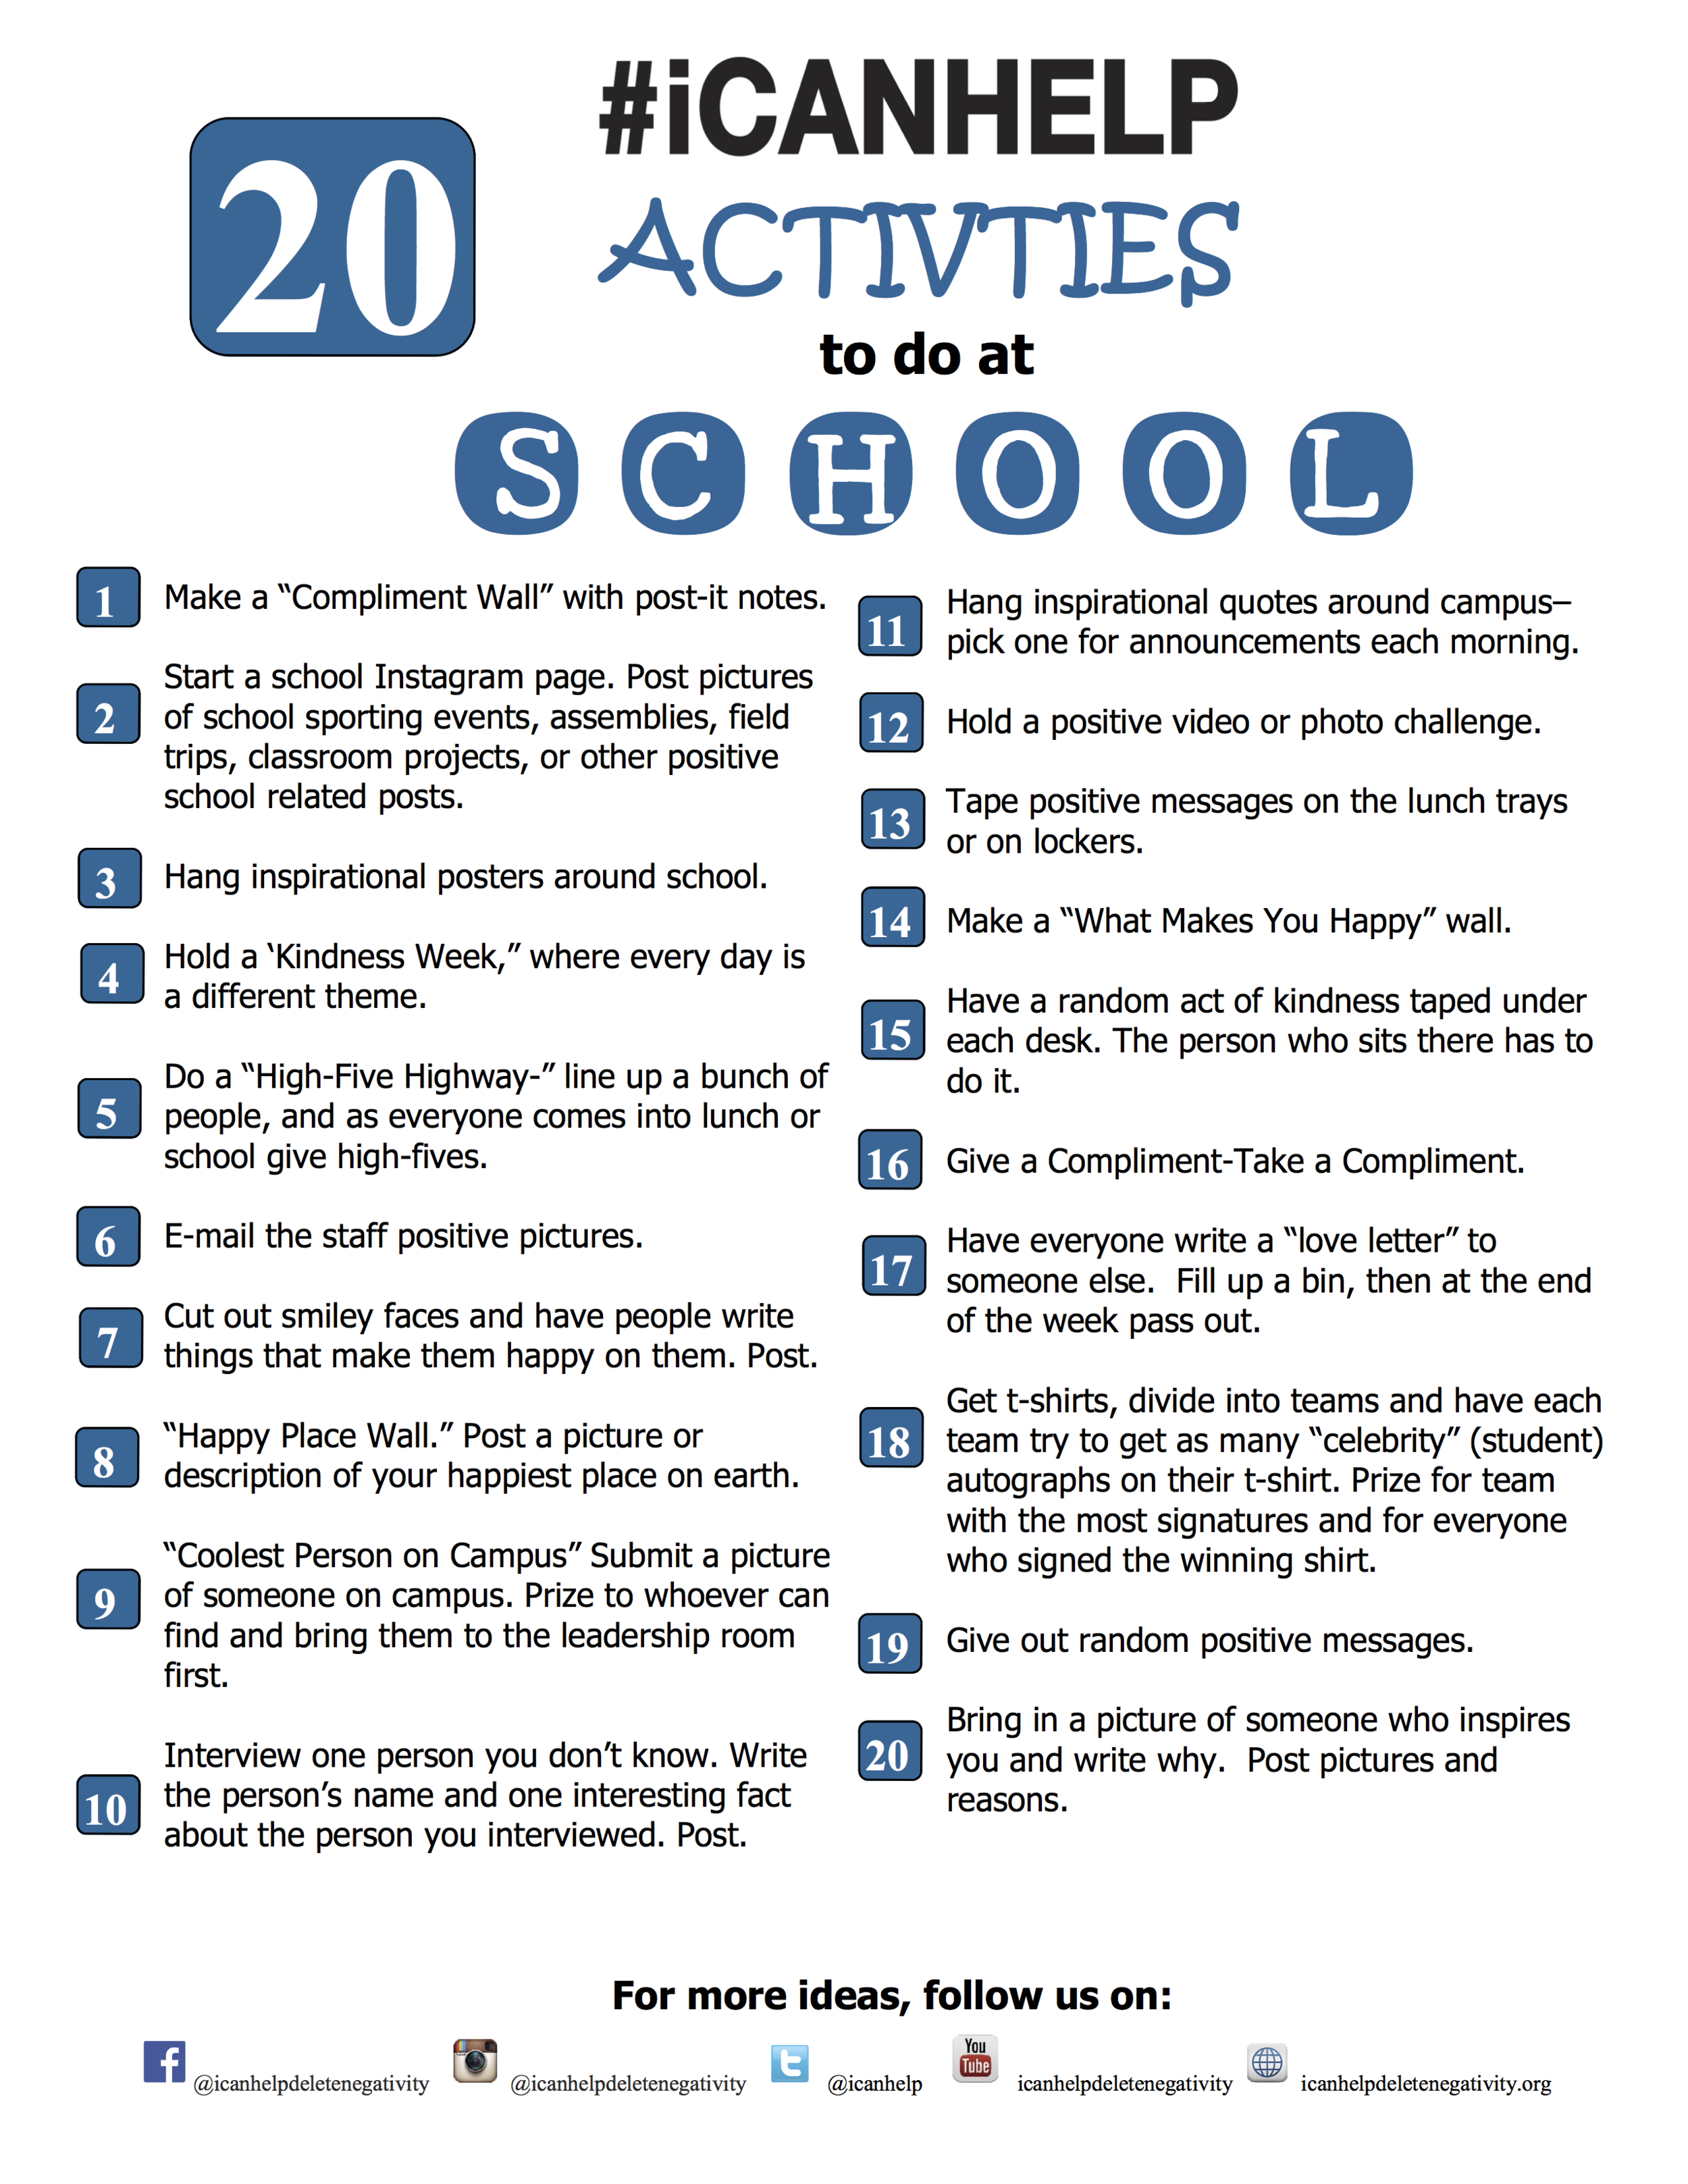 Starting #ICANHELP - Starting #ICANHELP at your school is easier than you think. While school assemblies are a great way to kick off #ICANHELP and make a change in your school's online behavior, you can start with something as simple as an event. Here are a few to help get you started on spreading kindness at your school